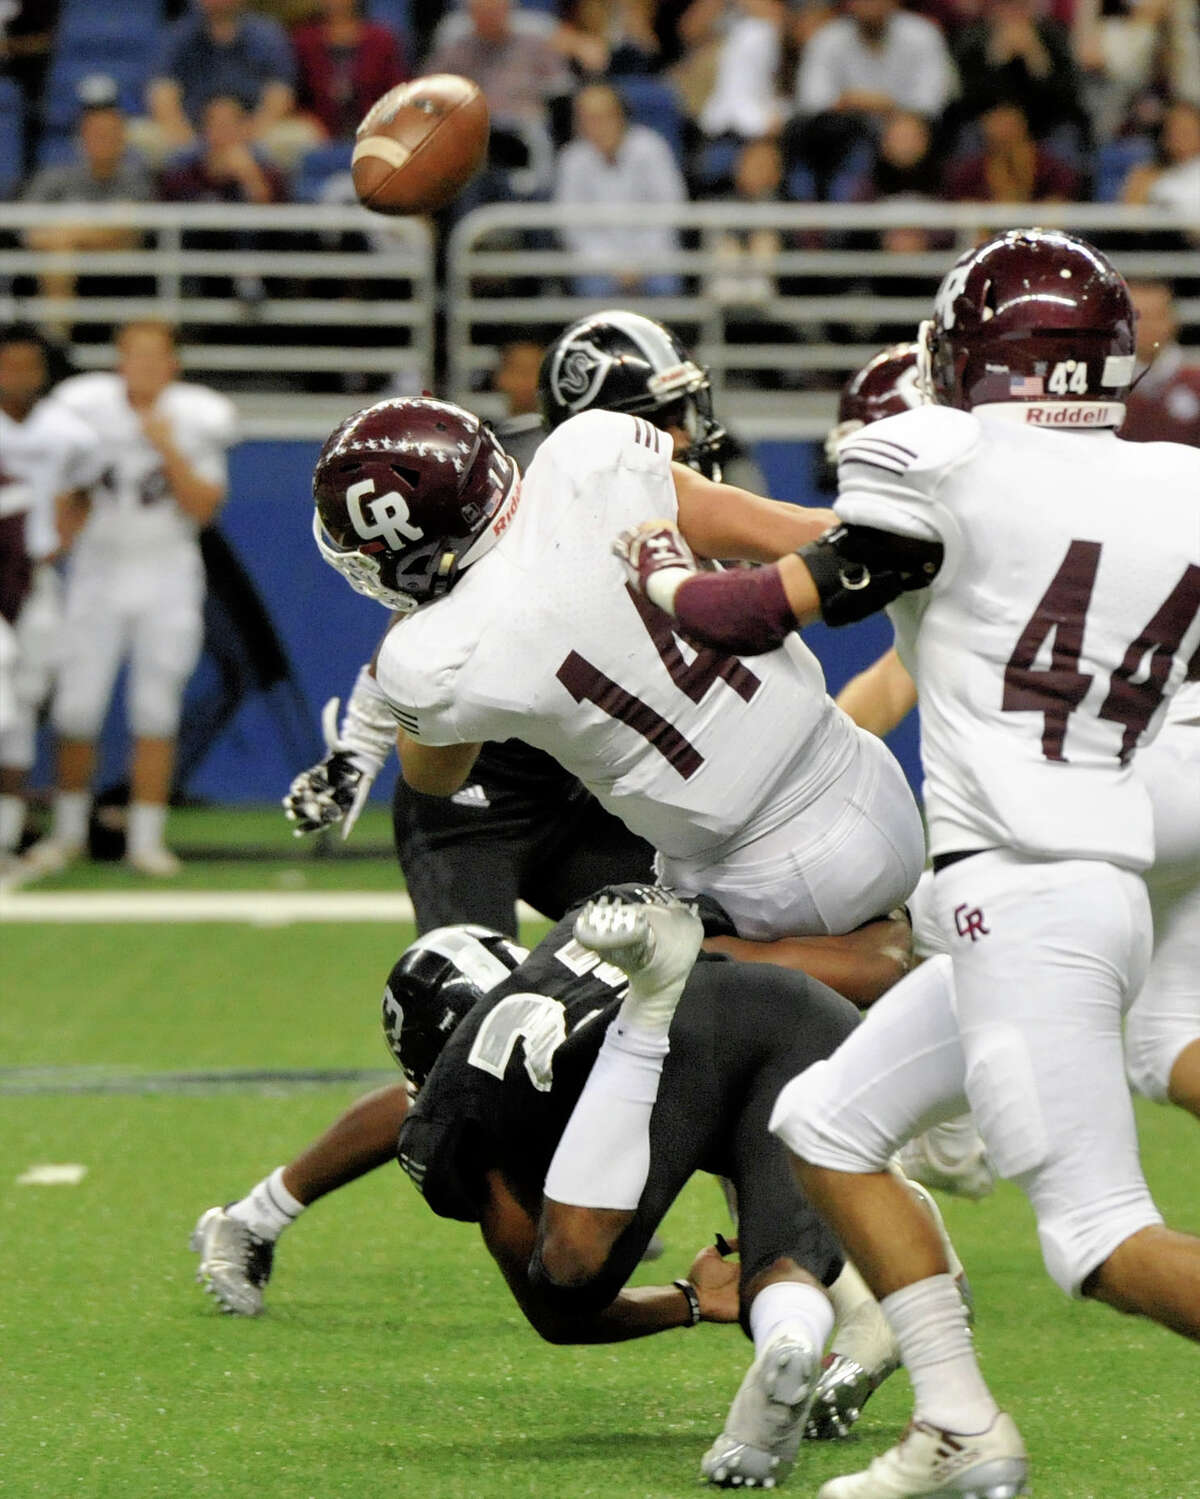 Cinco Ranch's Brant Kuithe (14) fumbles on a kickoff return in the first half to set up a short touchdown drive for Cibolo Steele on Saturday at the Alamodome.